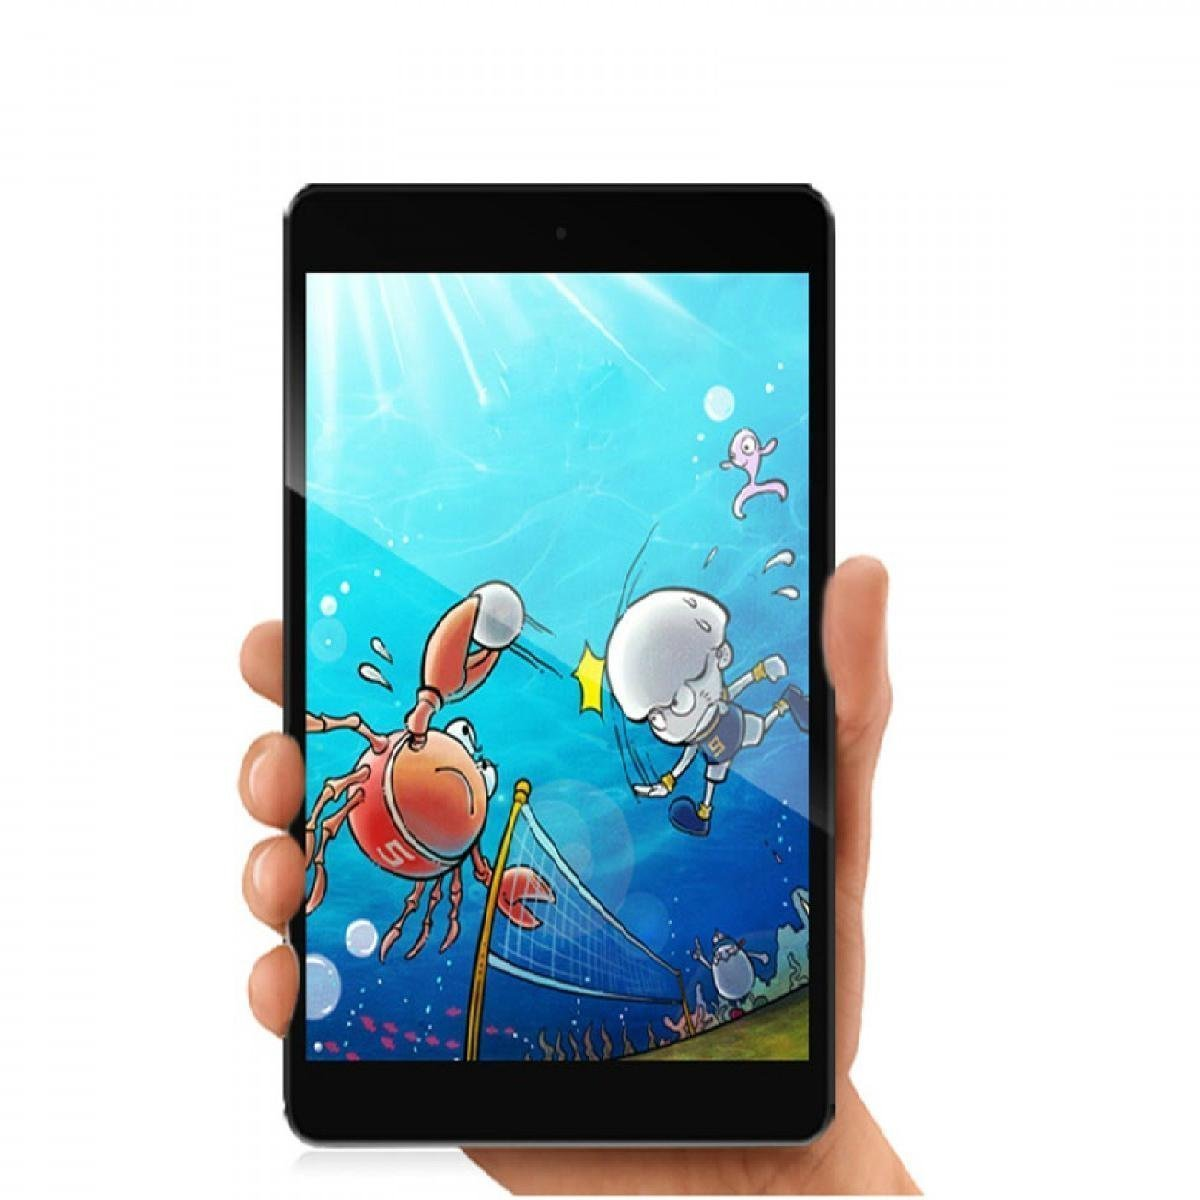 SVP 7-inch Phablet Smart Phone + Tablet PC Android 4.2.2 Bluetooth GPS WiFi Unlocked! ual Sim Card , Dual Camera , HD Display , Black Color , Capacitive 5 Point Multi-Touch Screen , Support 3D Game , 3G Dongle , Wi-Fi , E-Book , Features Google Play Store